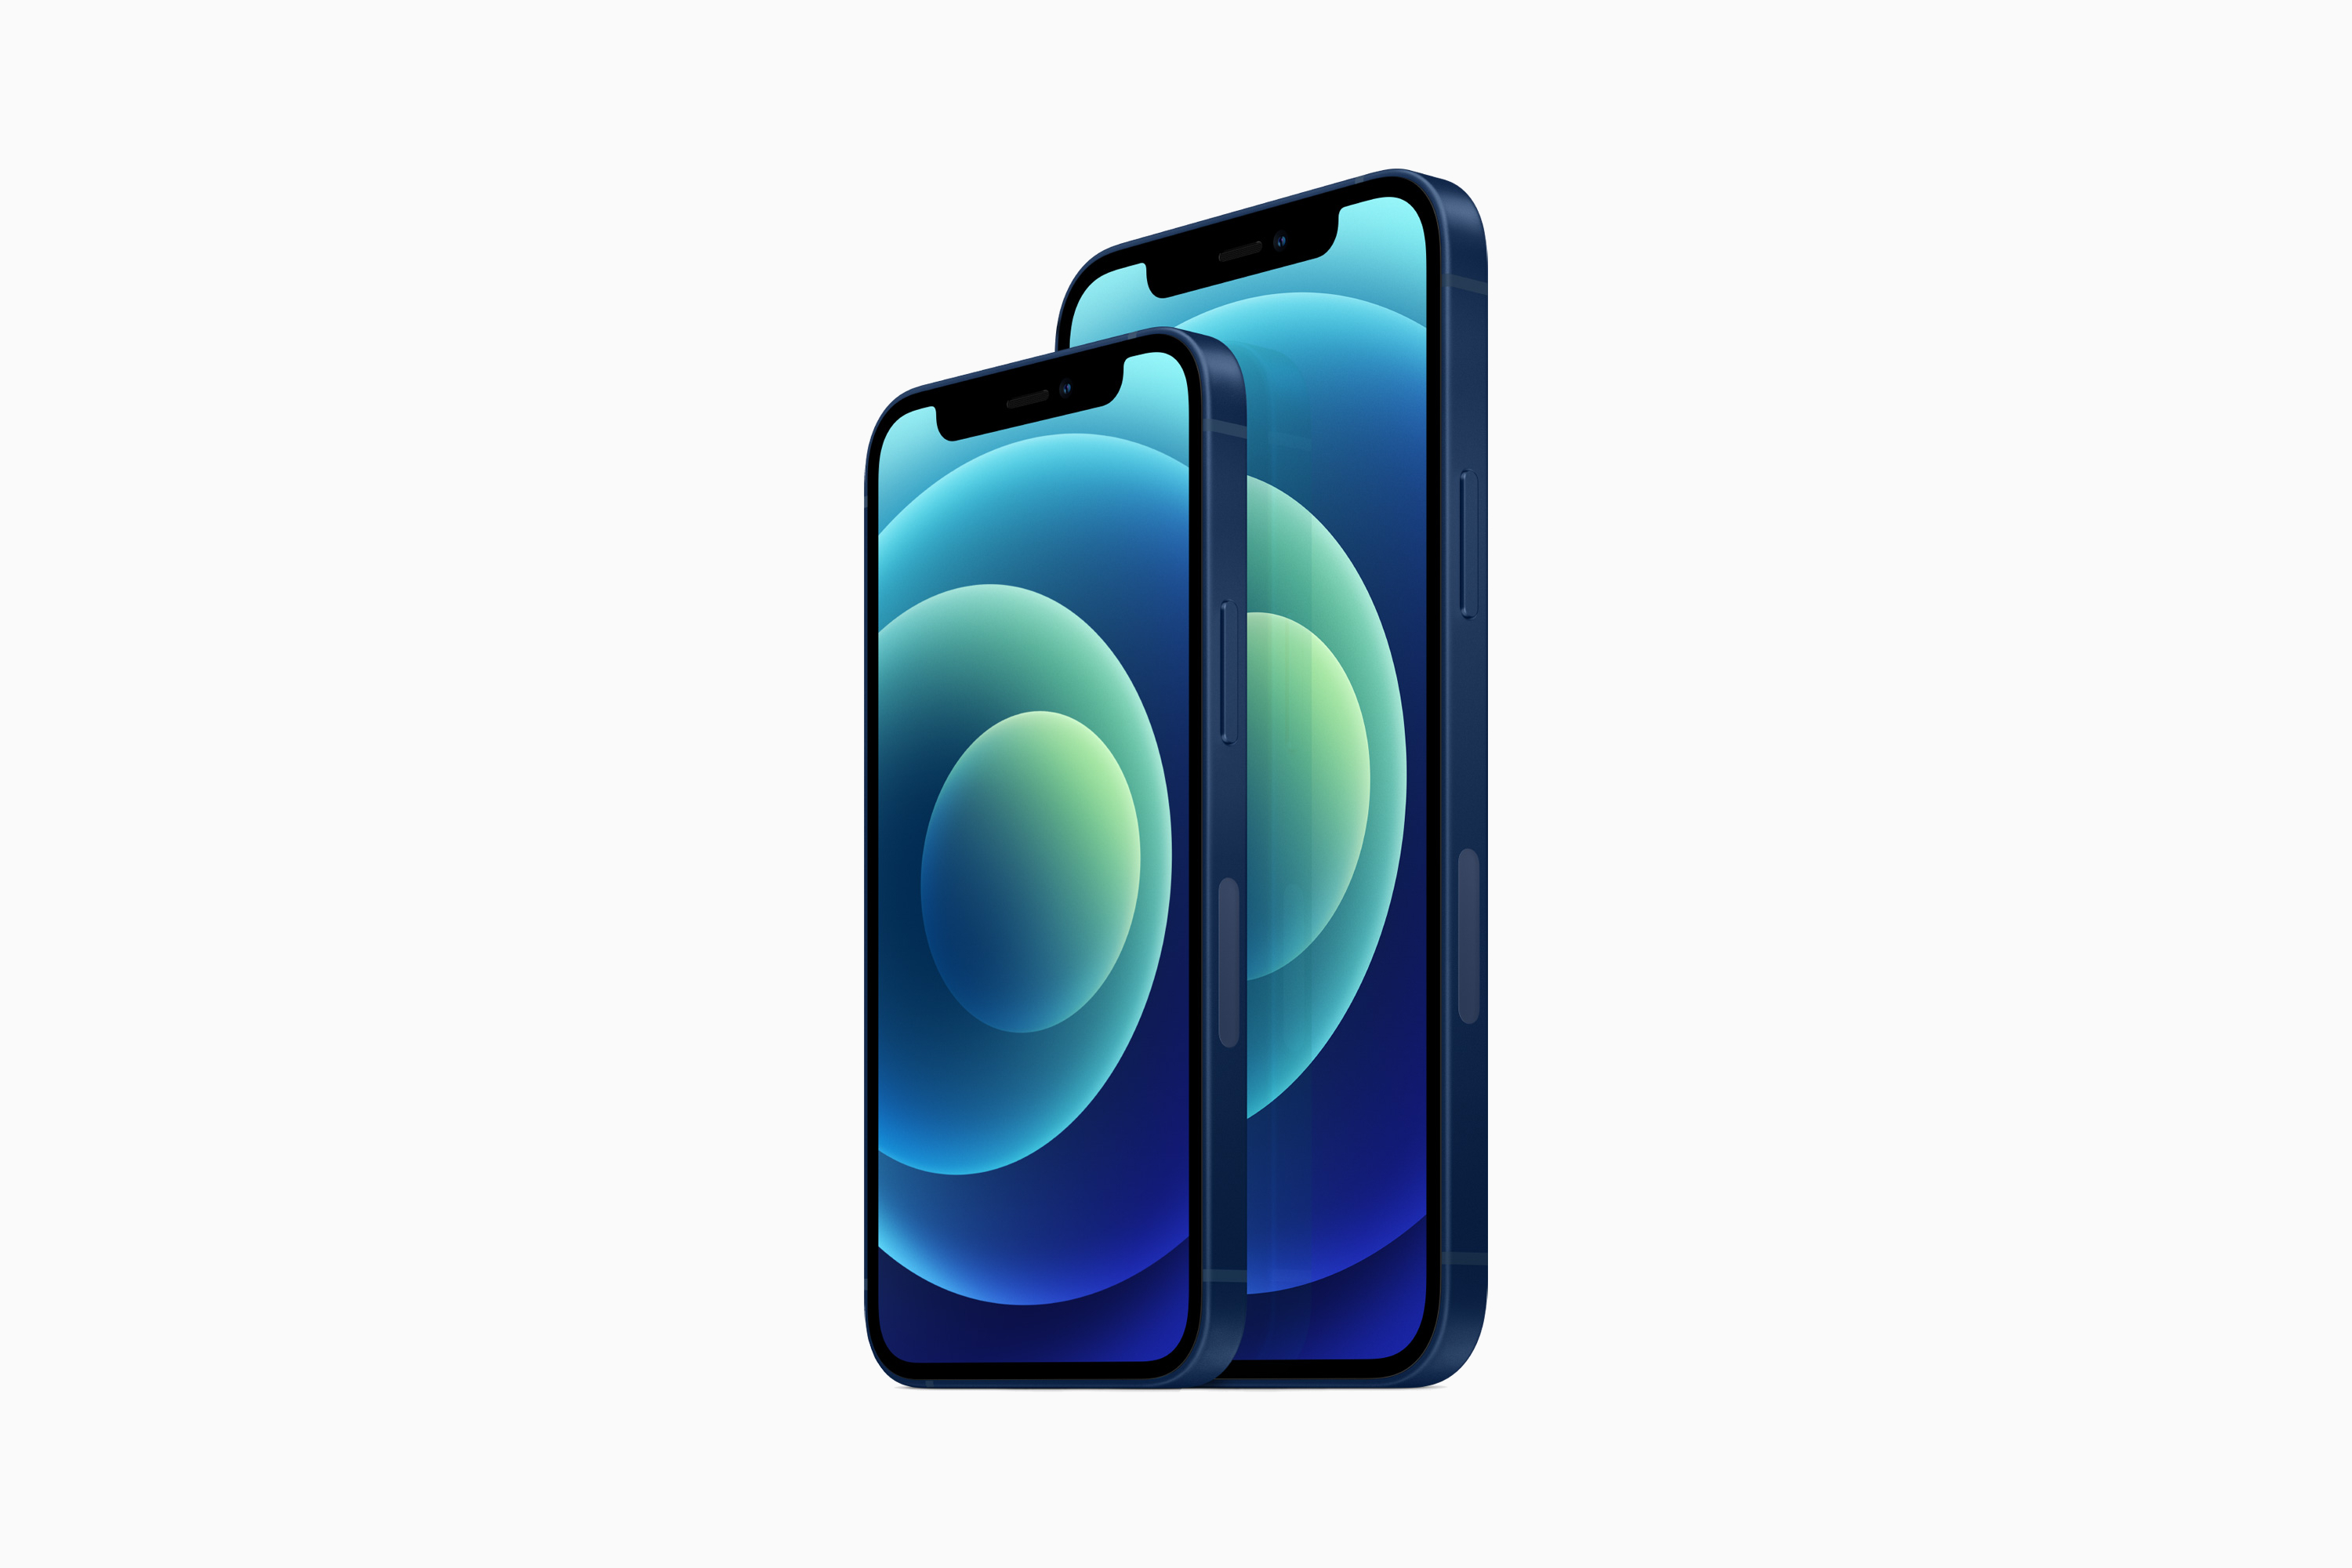 Iphone 12 Lineup Official With A14 Bionic Chip And 5g Support It Pro